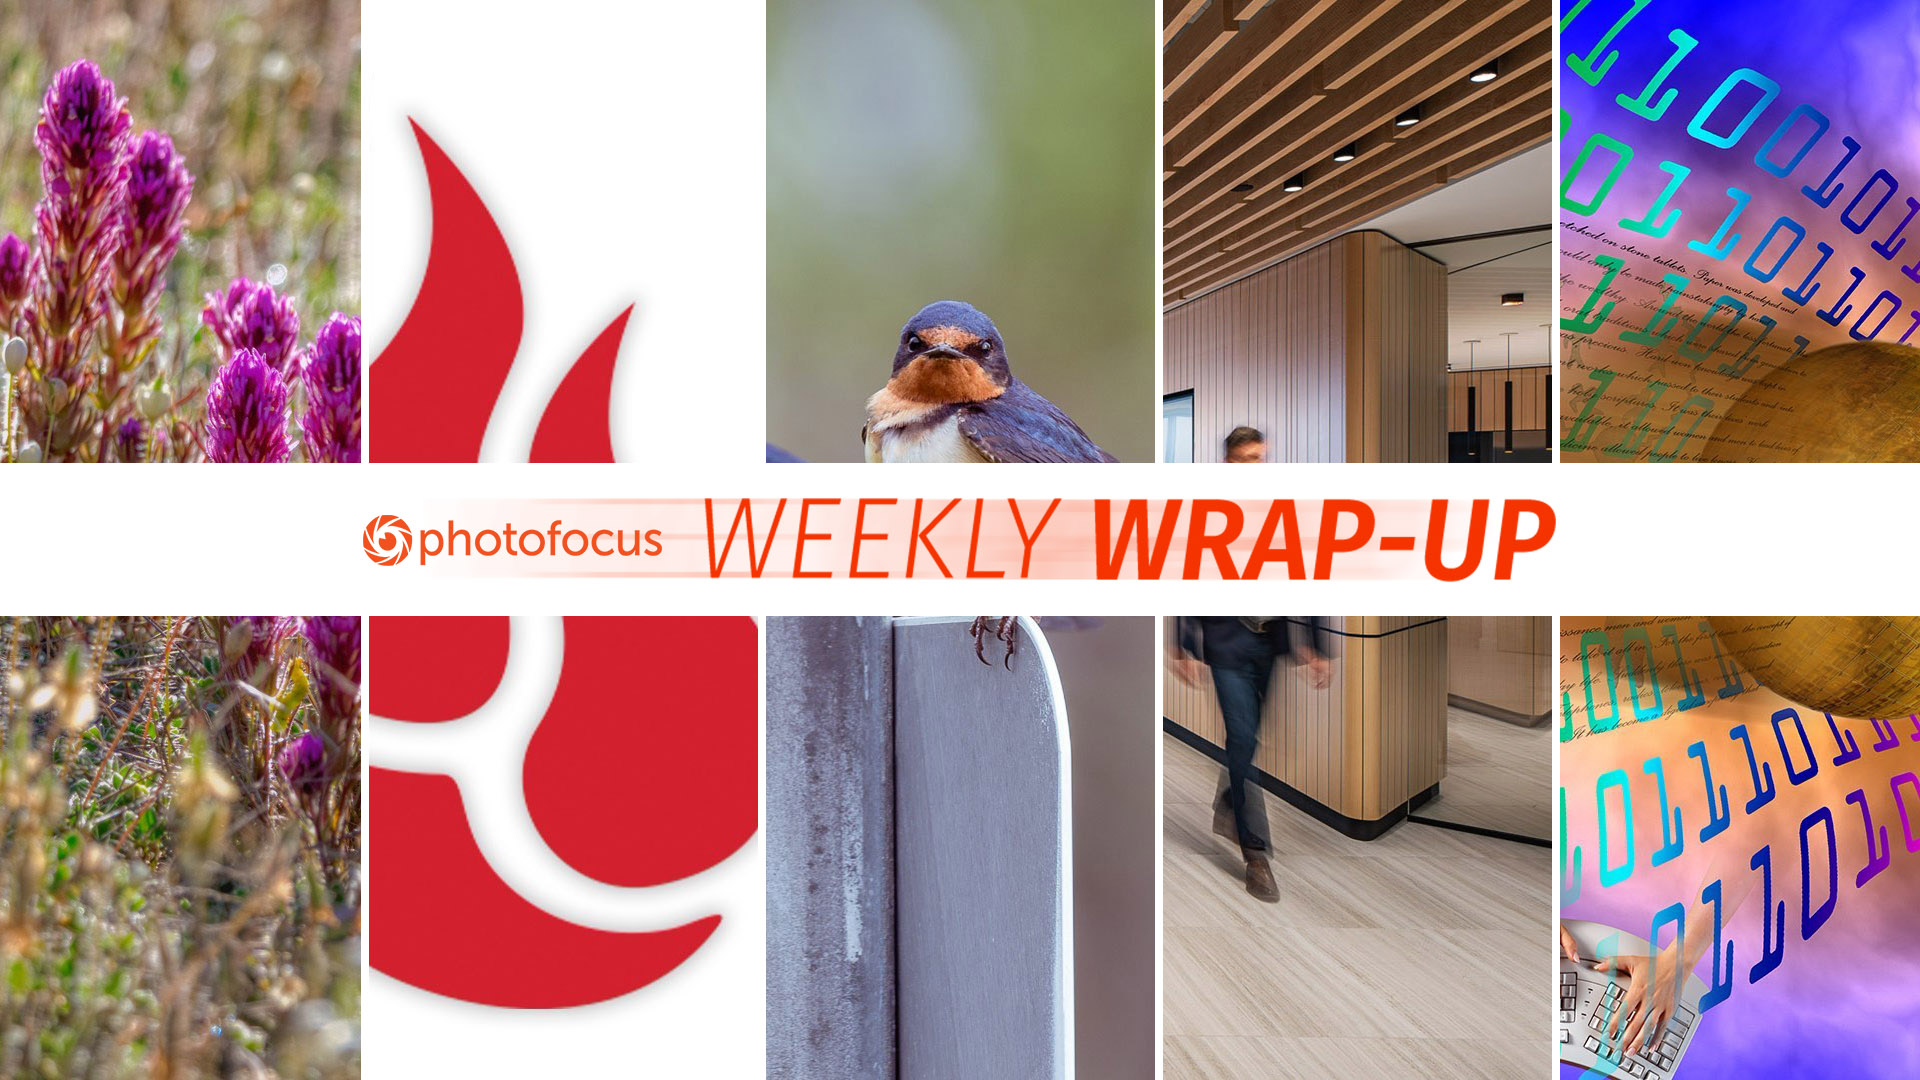 The Photofocus Weekly Wrap-Up for May 19-25